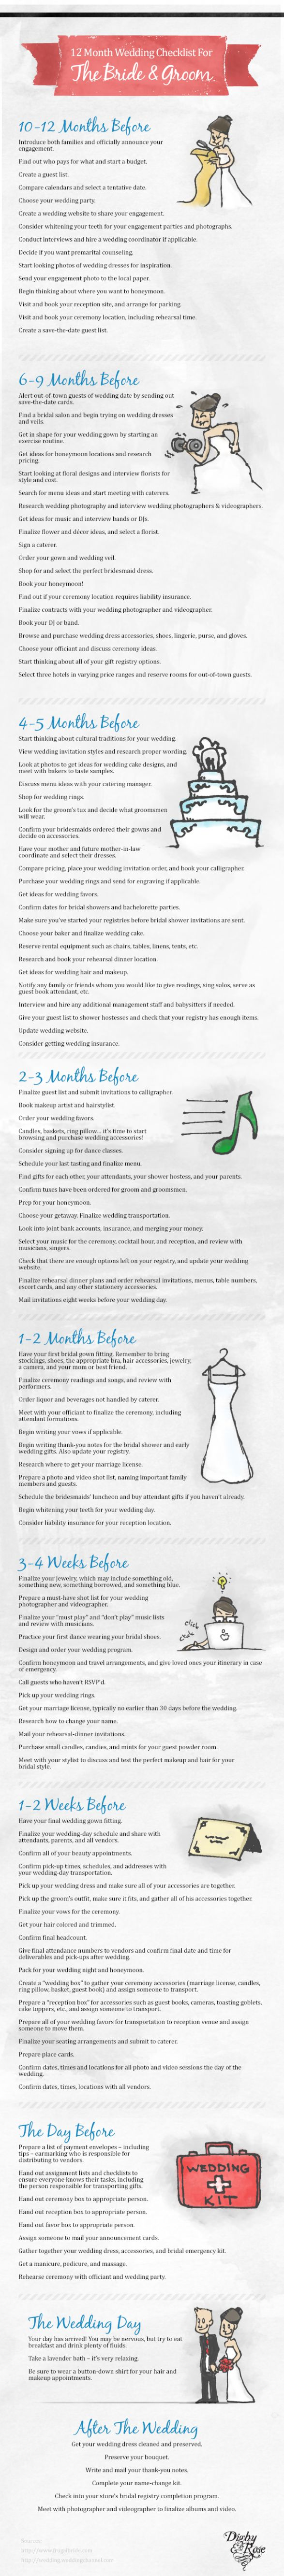 Complete Wedding Planning Guide and Checklist. I'm not sure i agree with everything, but it is a nice reference guide.